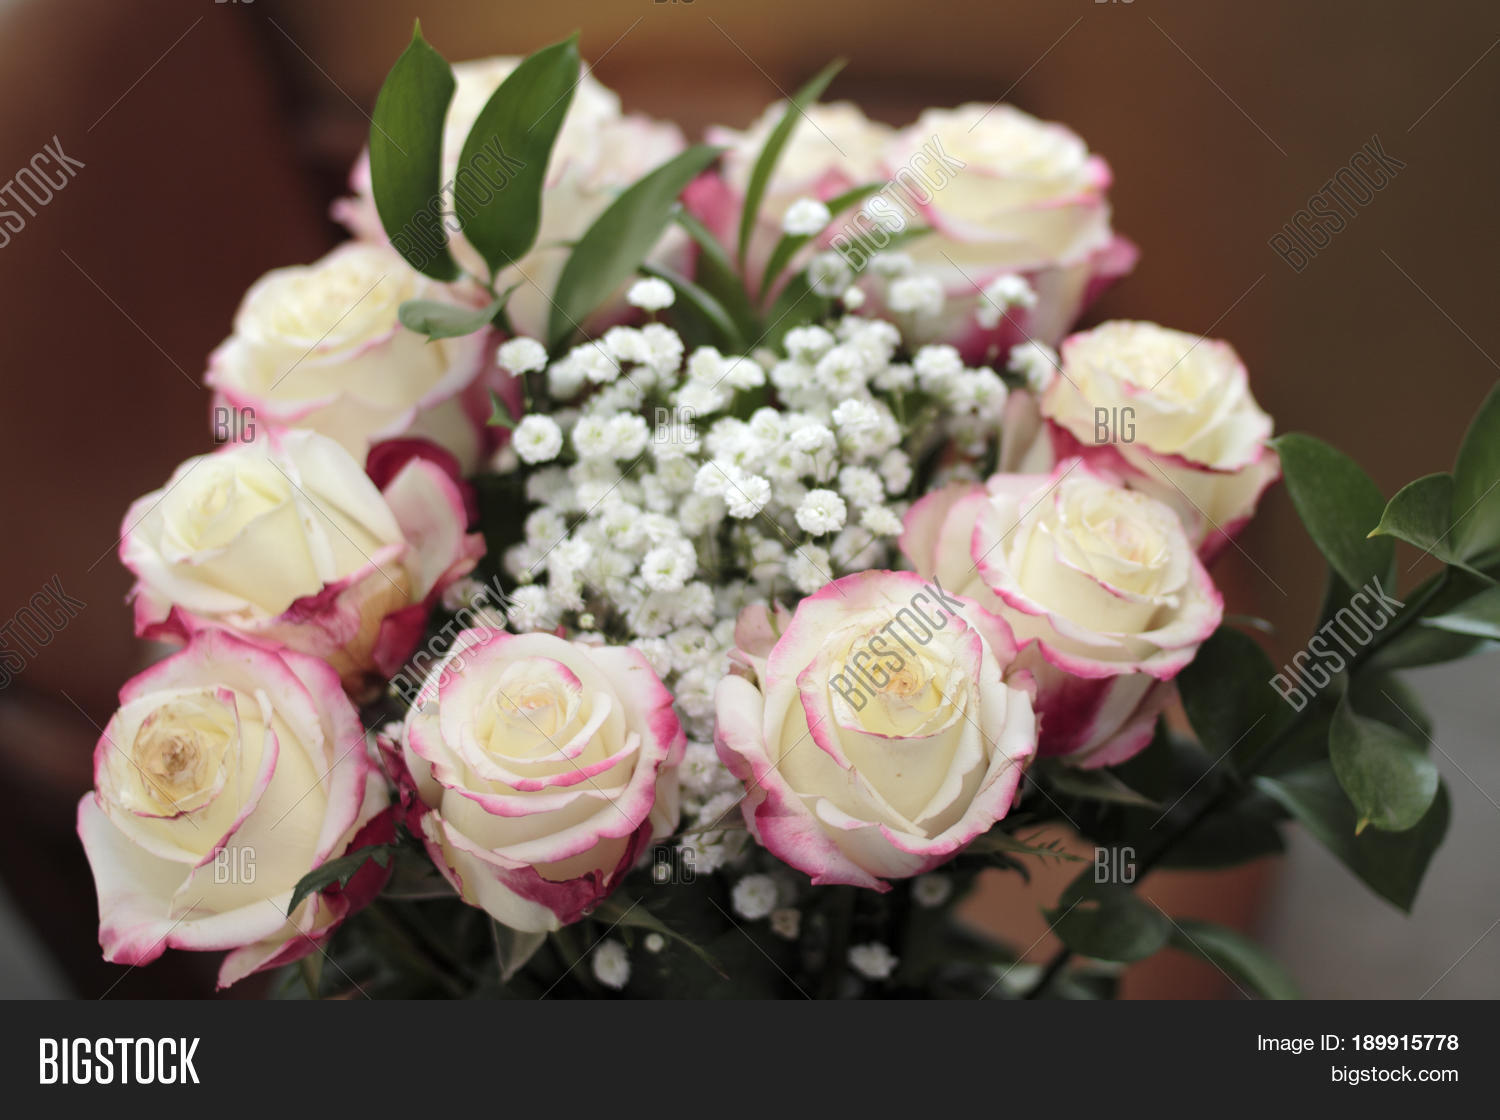 Beautiful Bouquet White Roses Small Image Photo Bigstock